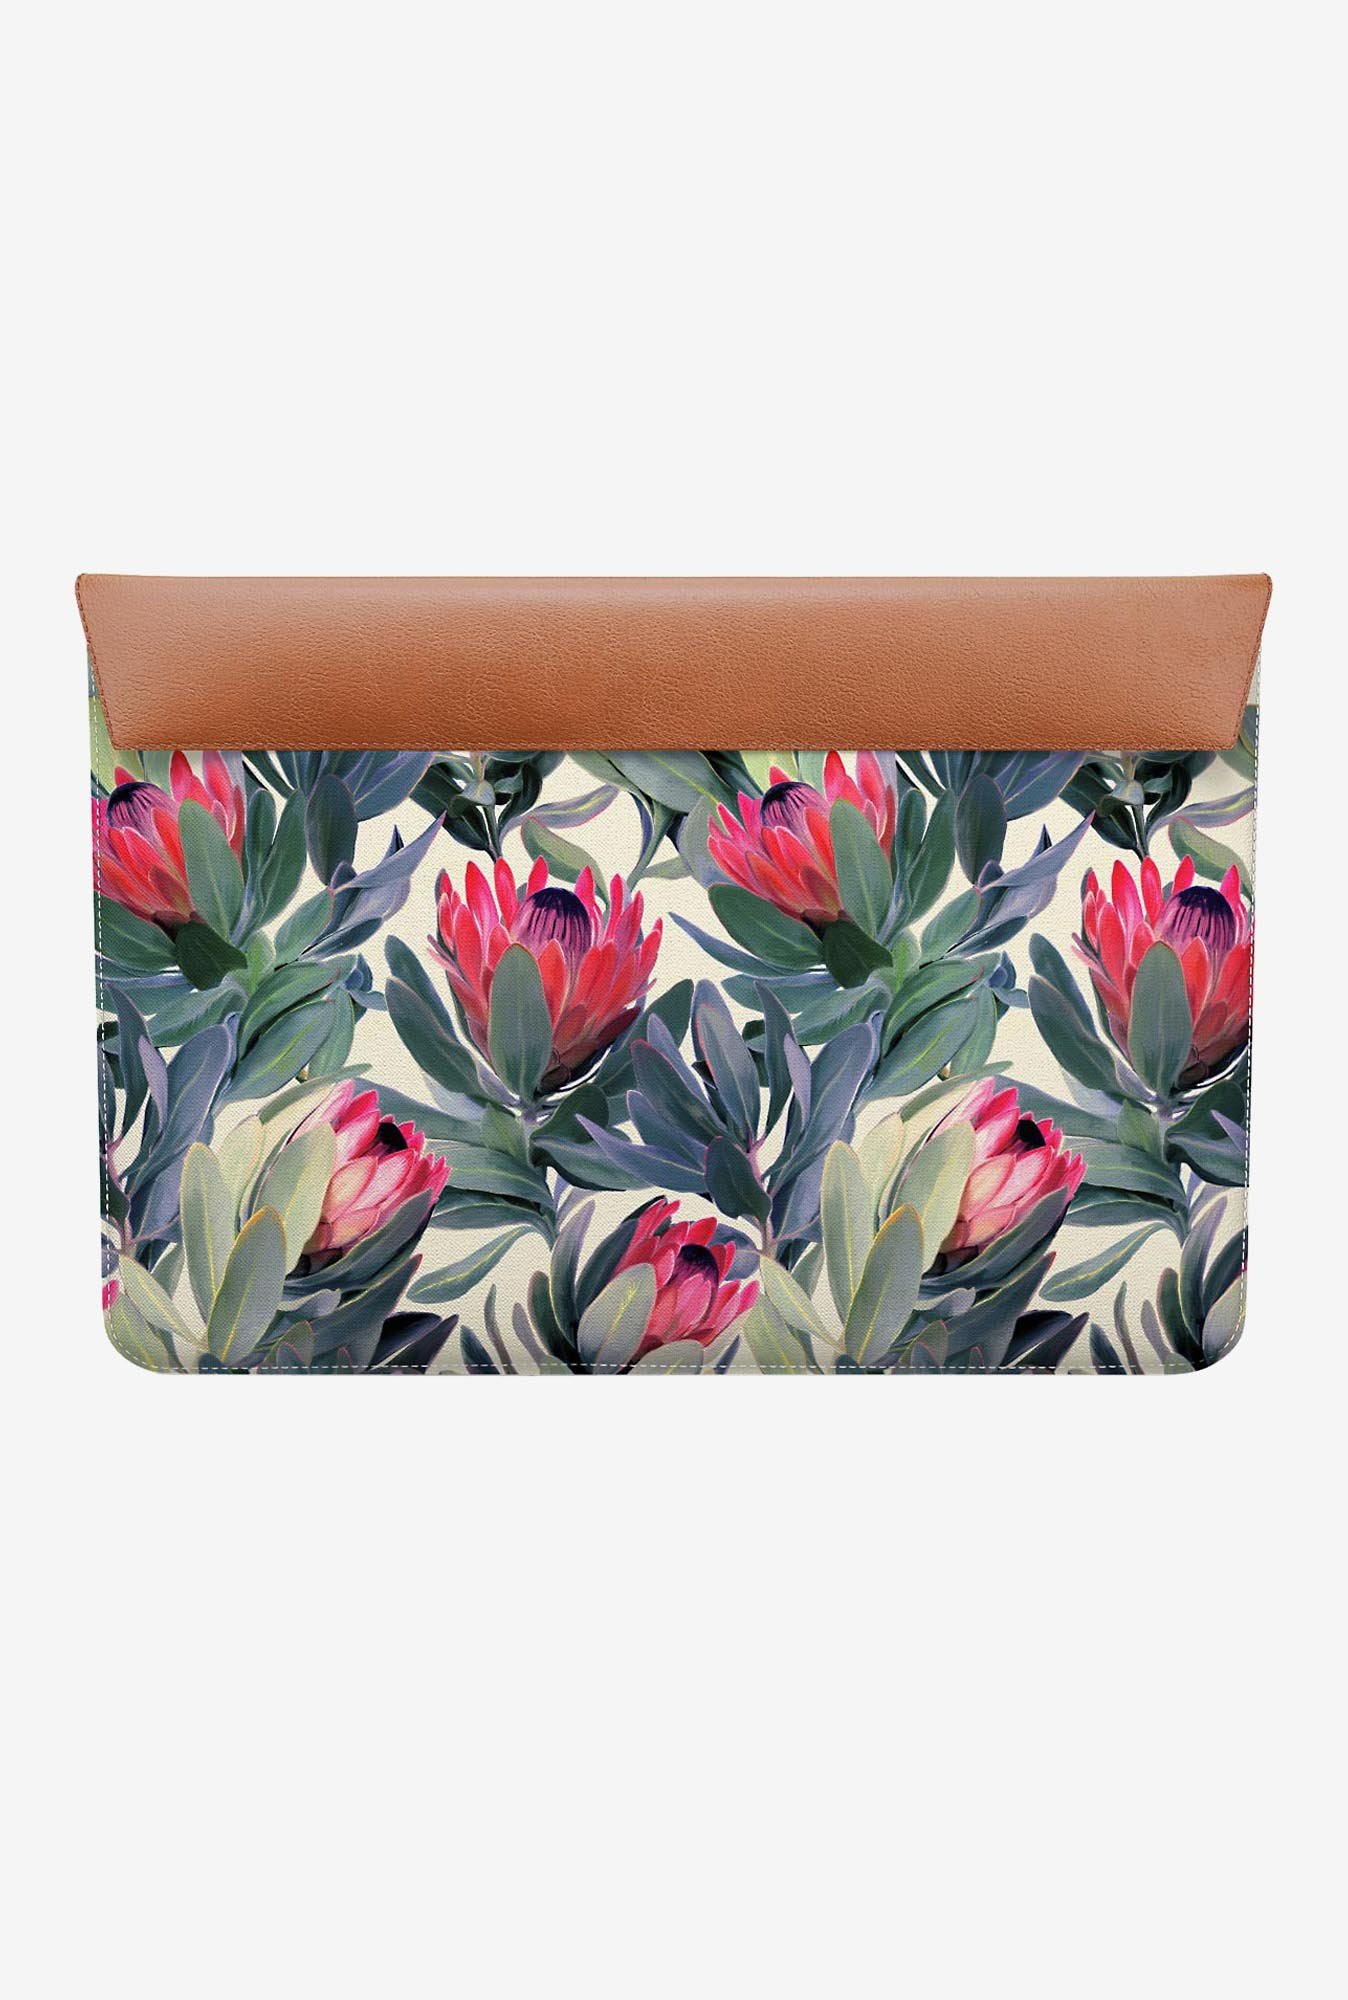 "DailyObjects Painted Protea MacBook Air 11"" Envelope Sleeve"